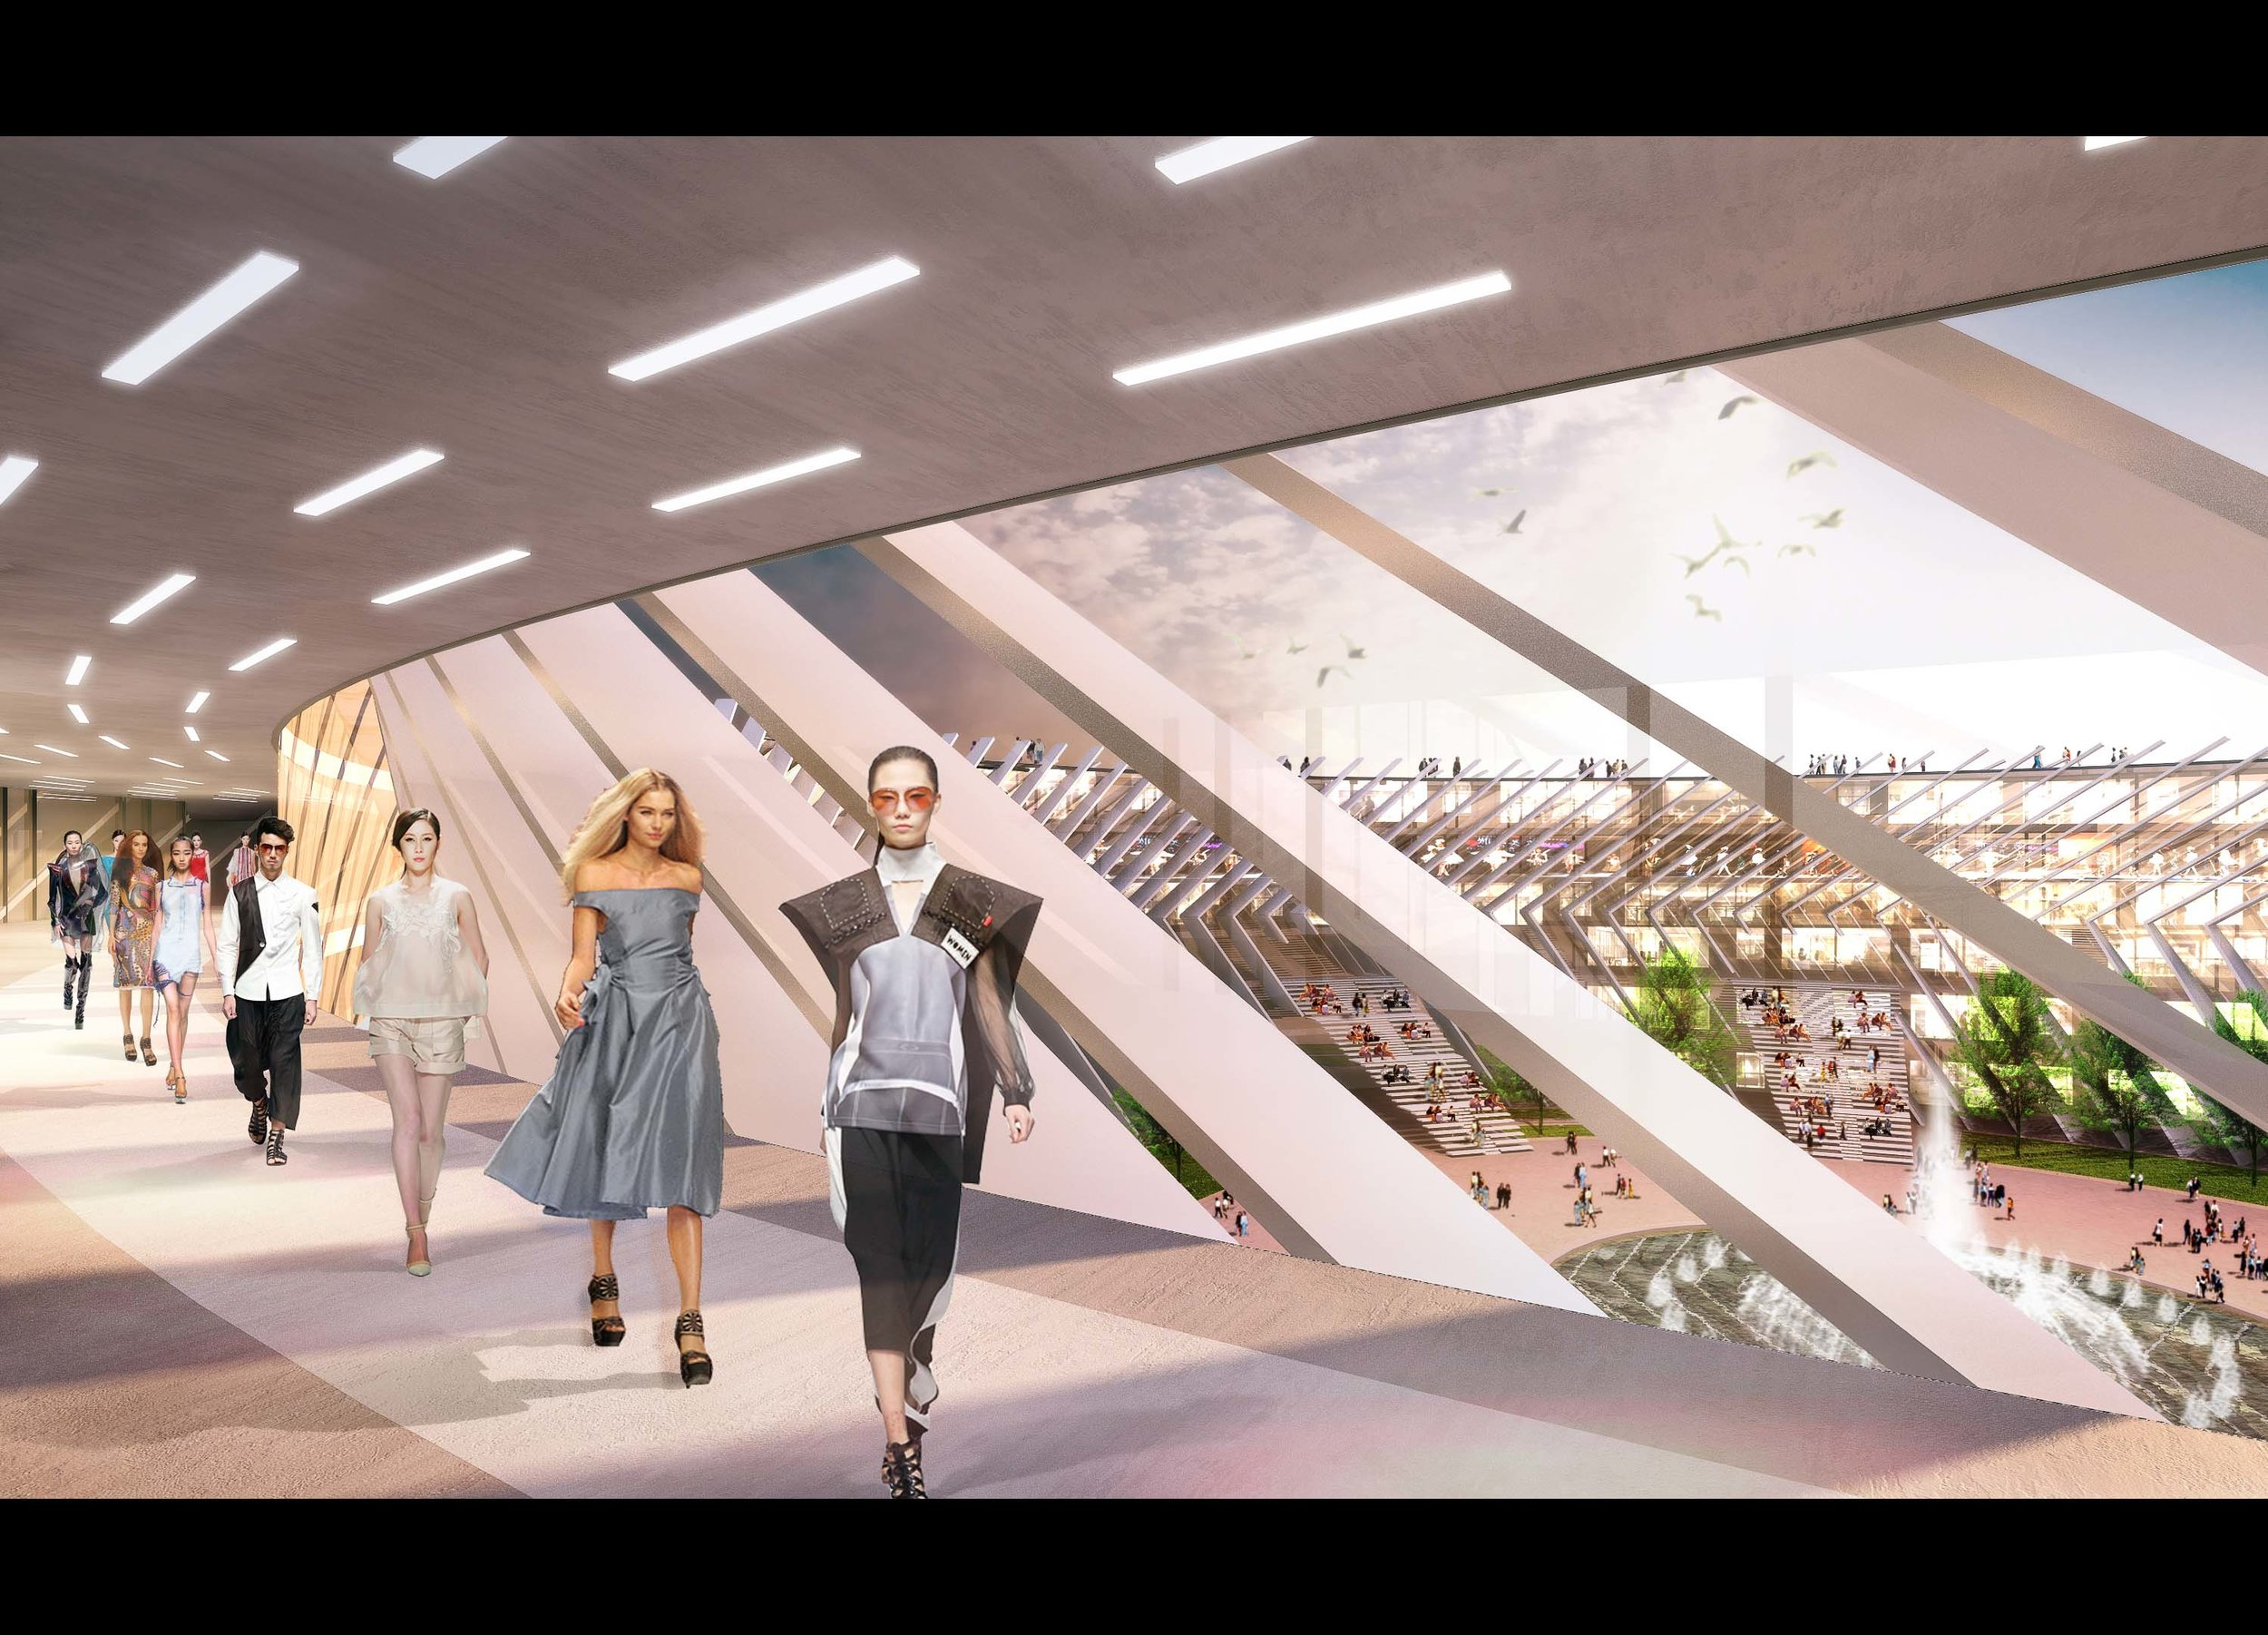 architecture and engineering international office Berlin competition